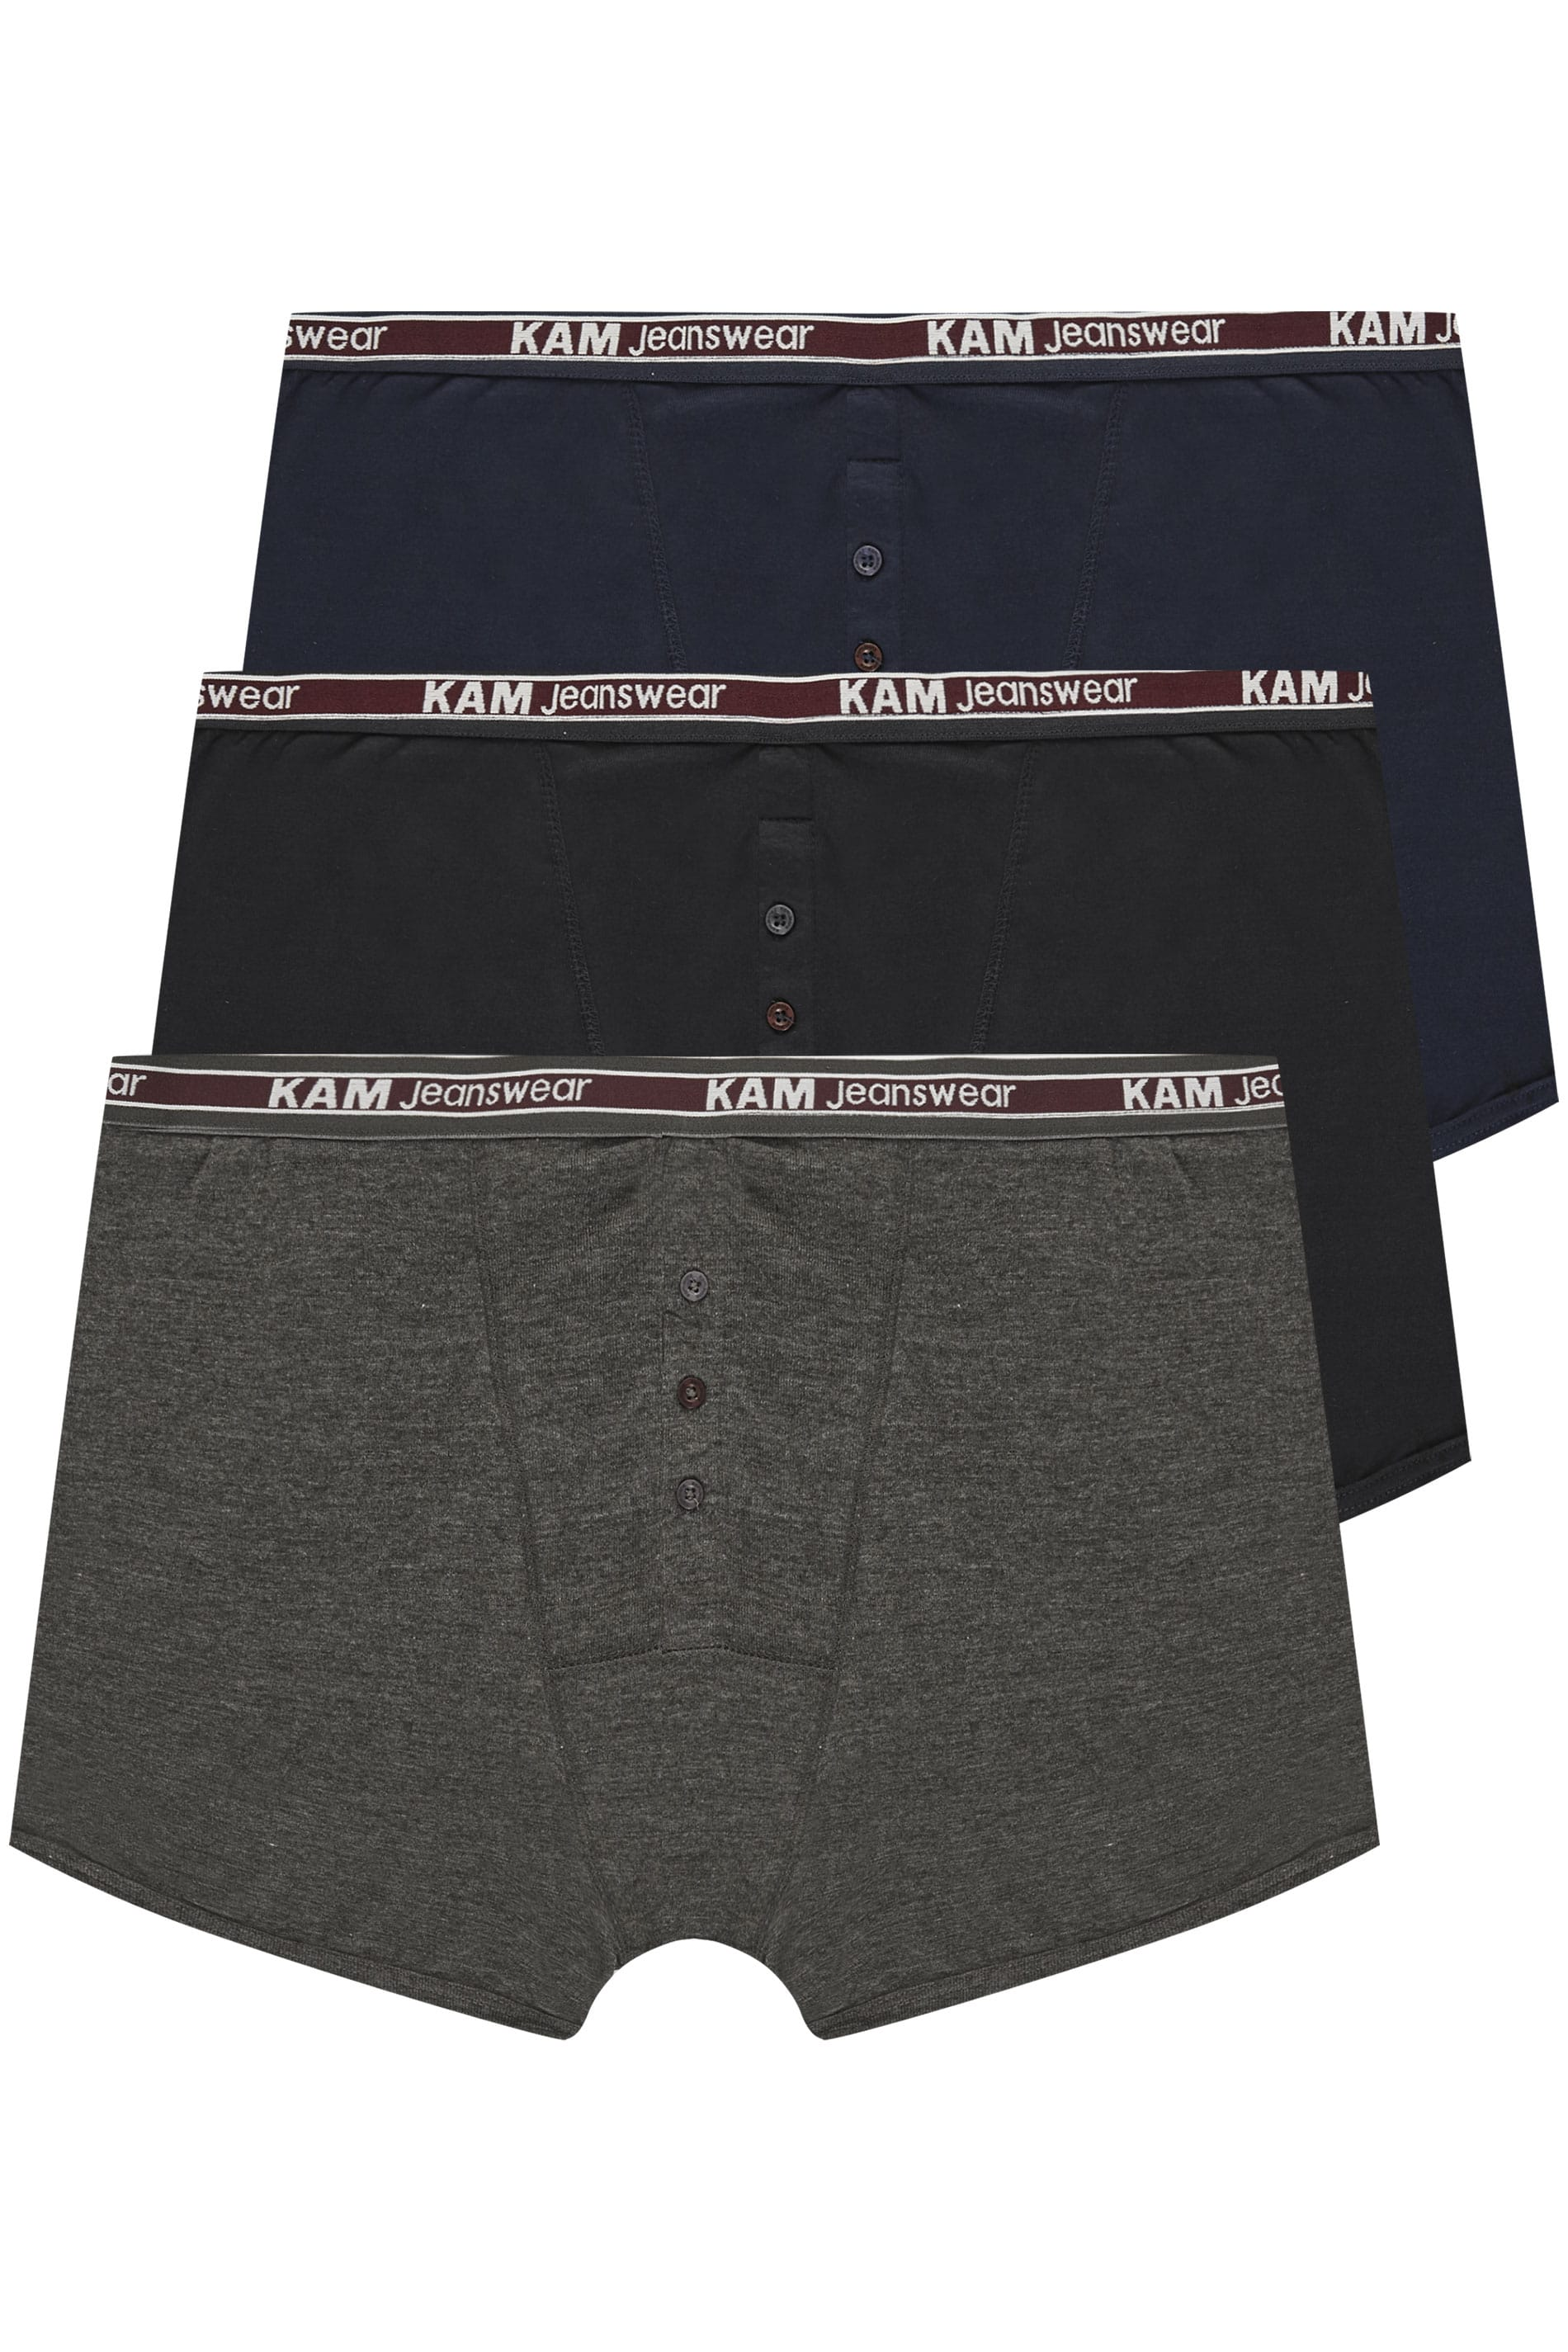 KAM 3 PACK Assorted Boxers